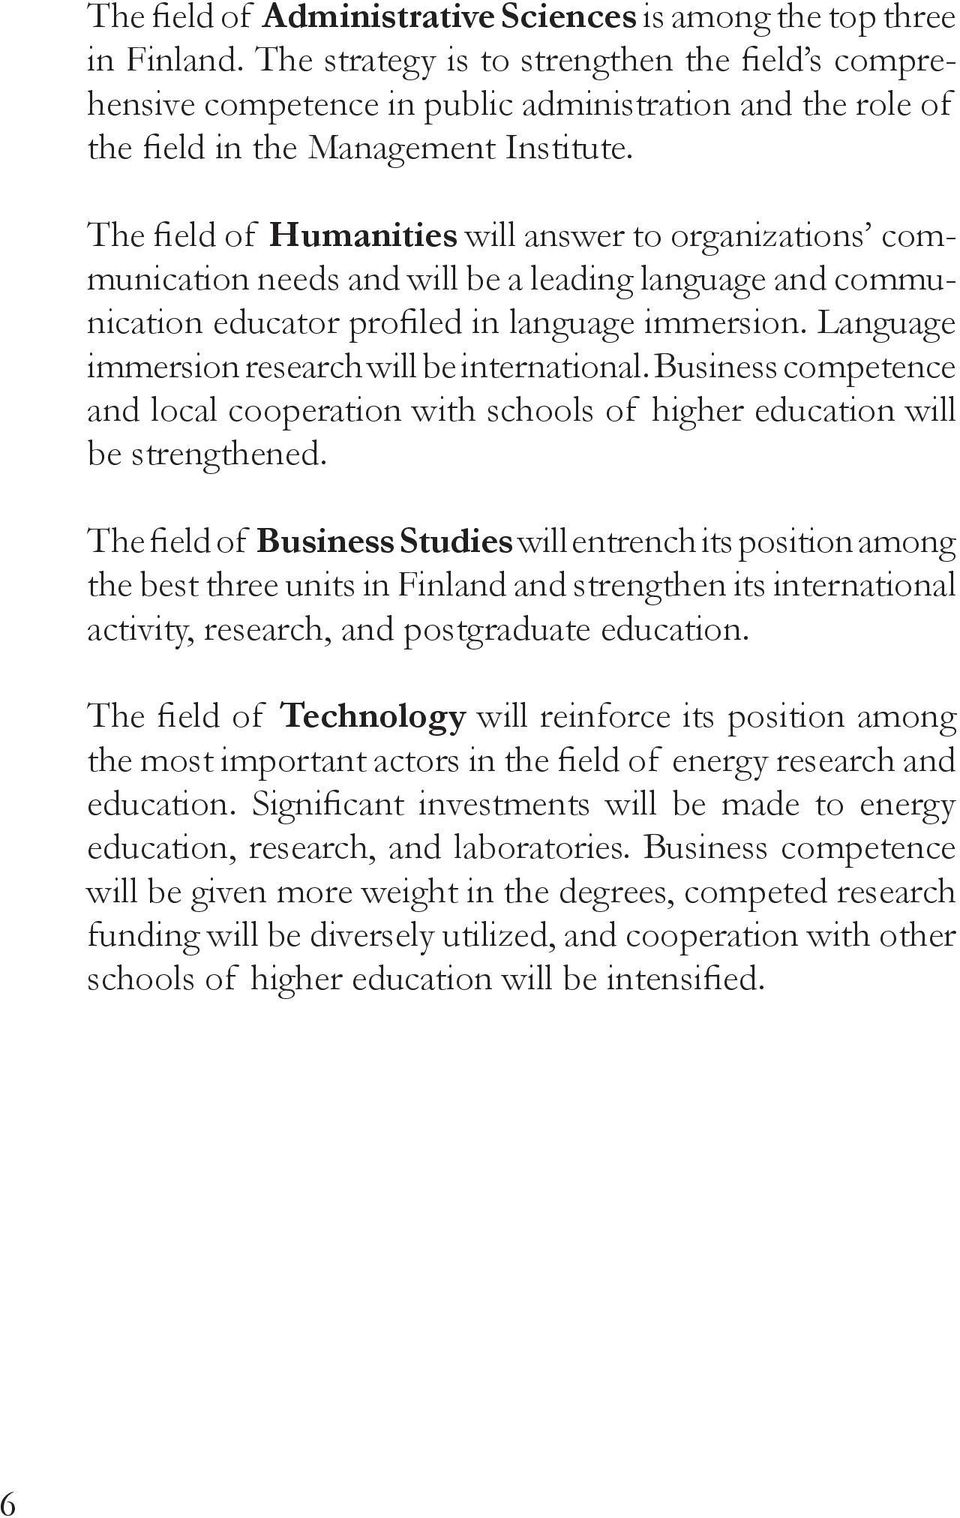 The field of Humanities will answer to organizations communication needs and will be a leading language and communication educator profiled in language immersion.